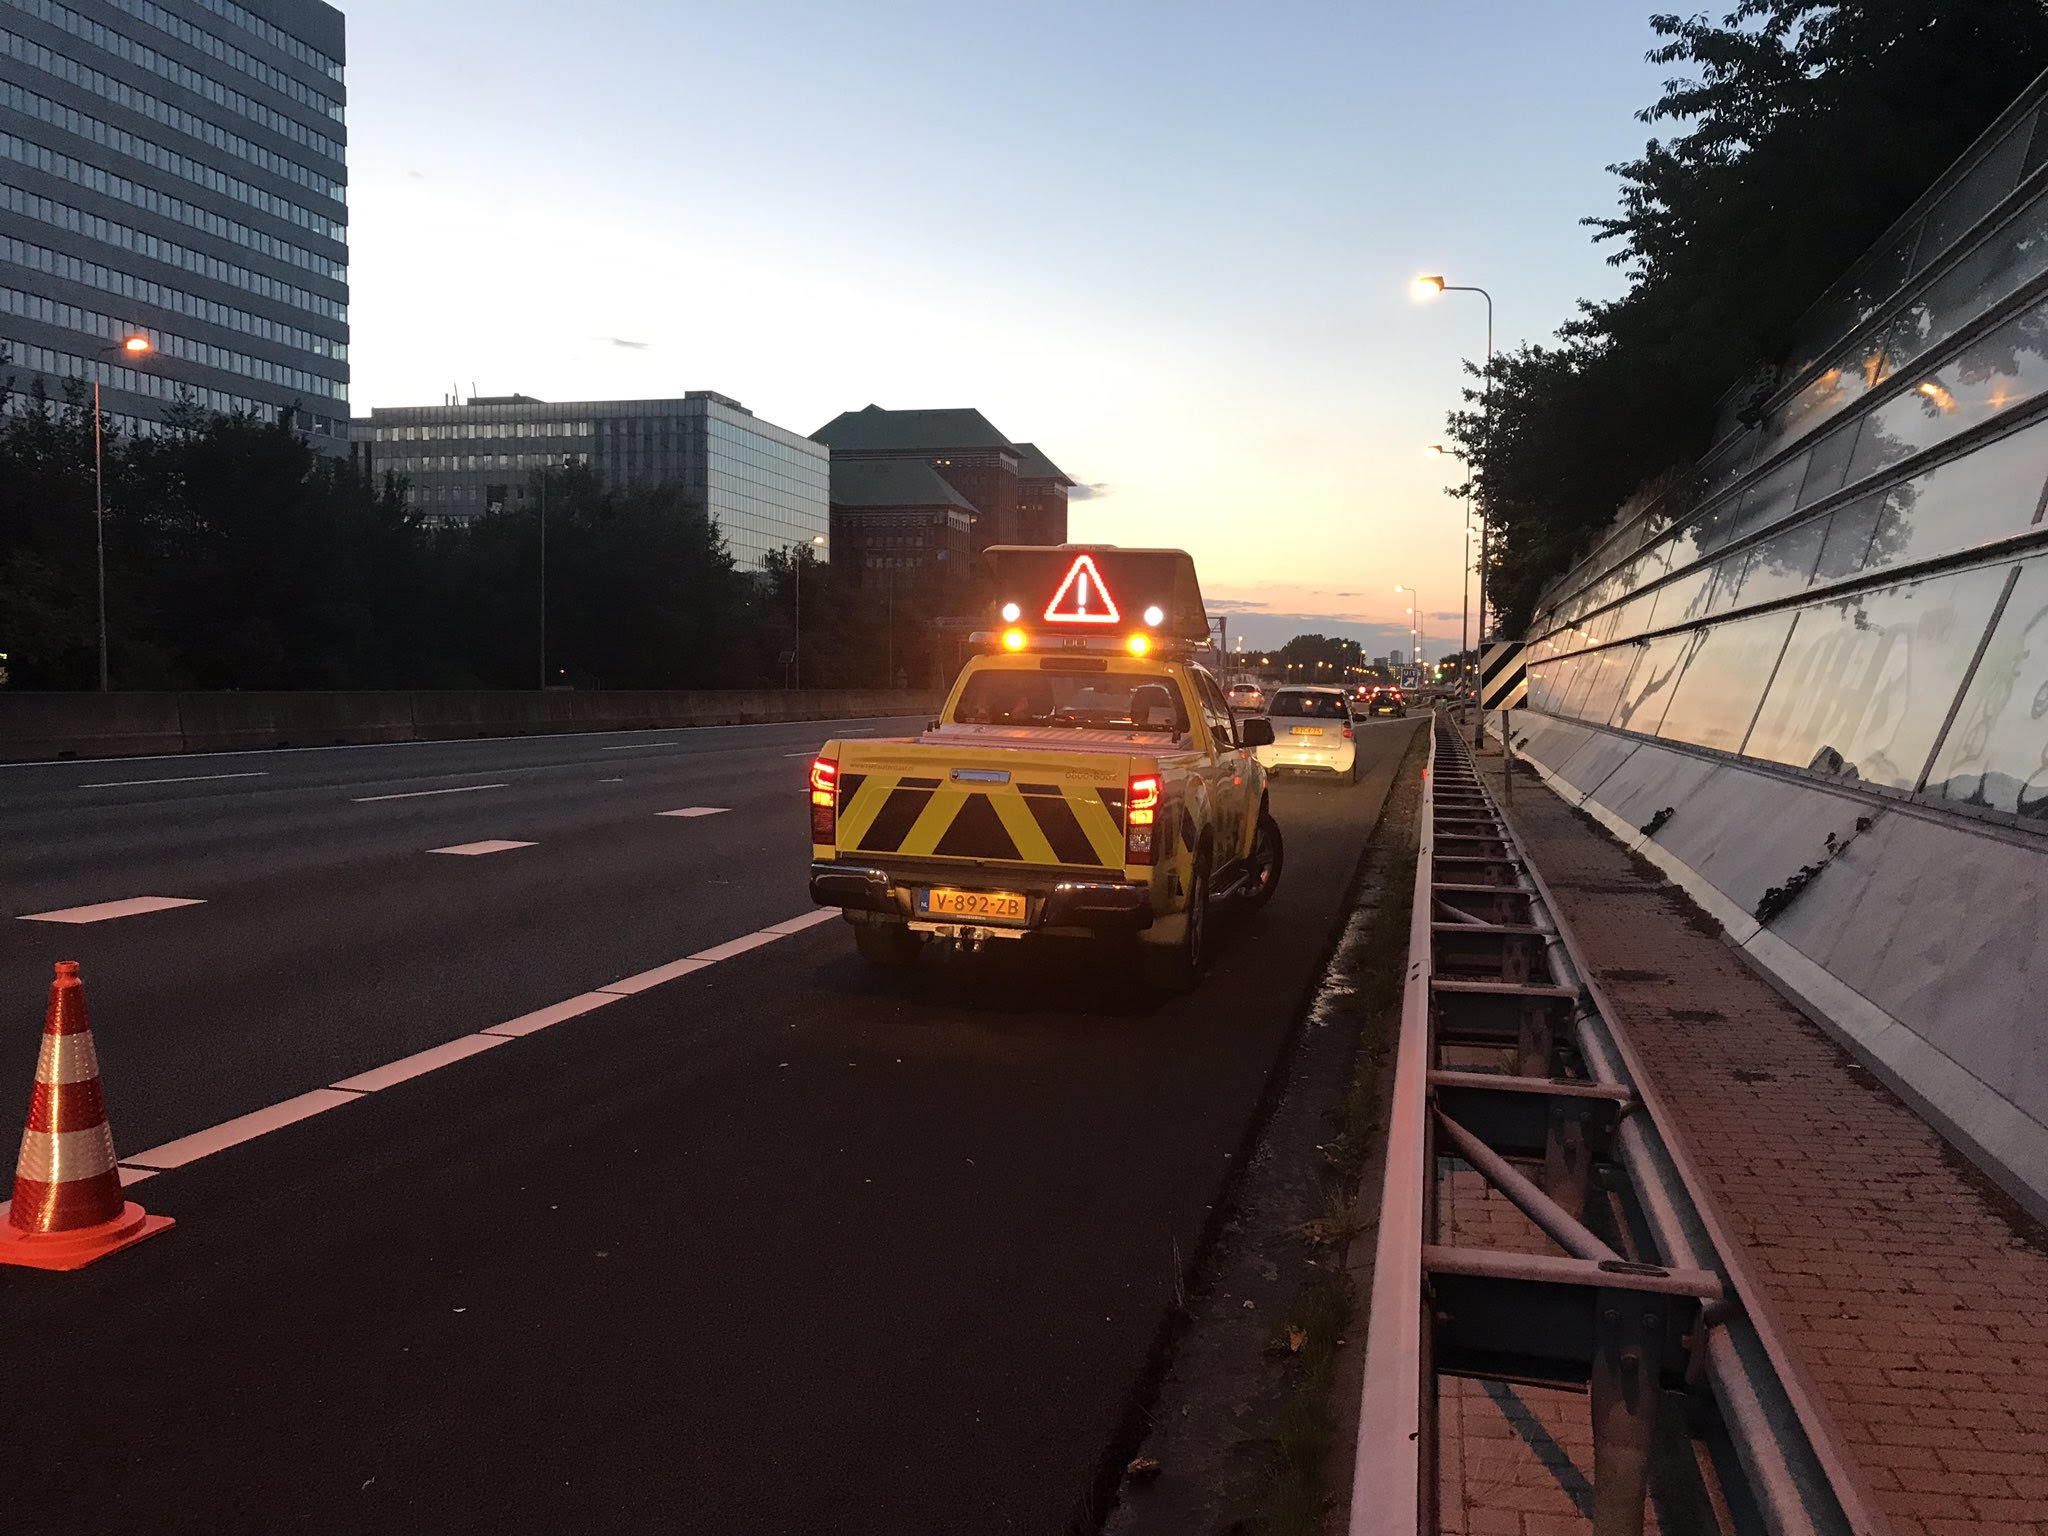 Rijkswaterstaat securing an abandoned vehicle on the A10 motorway on 20 June 2019 (photograph: Road Inspector Stefan)